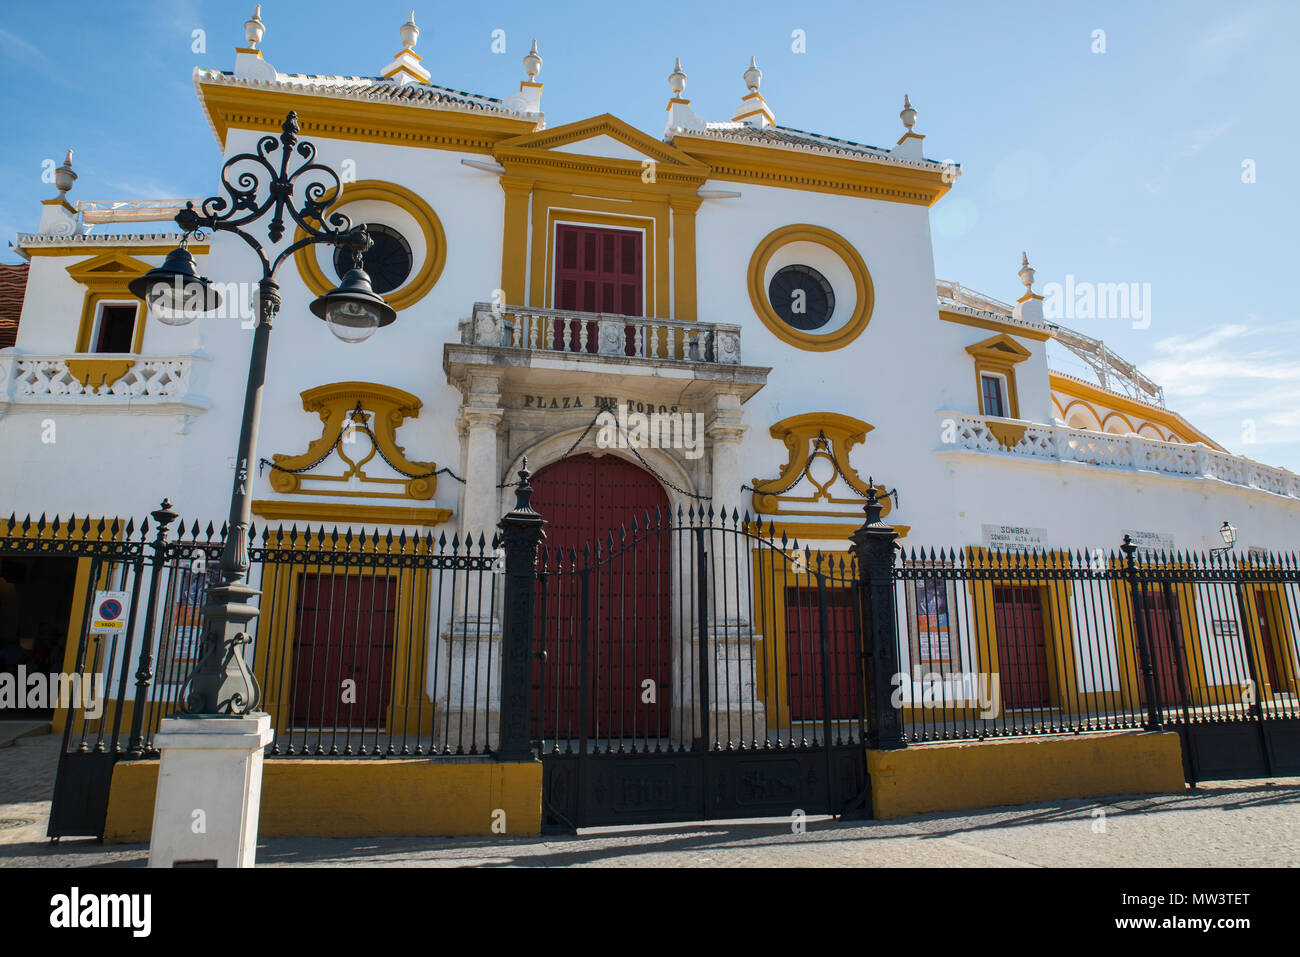 Plaza de toros de la Real Maestranza de Caballería de Sevilla bull ring, Seville, Spain Stock Photo